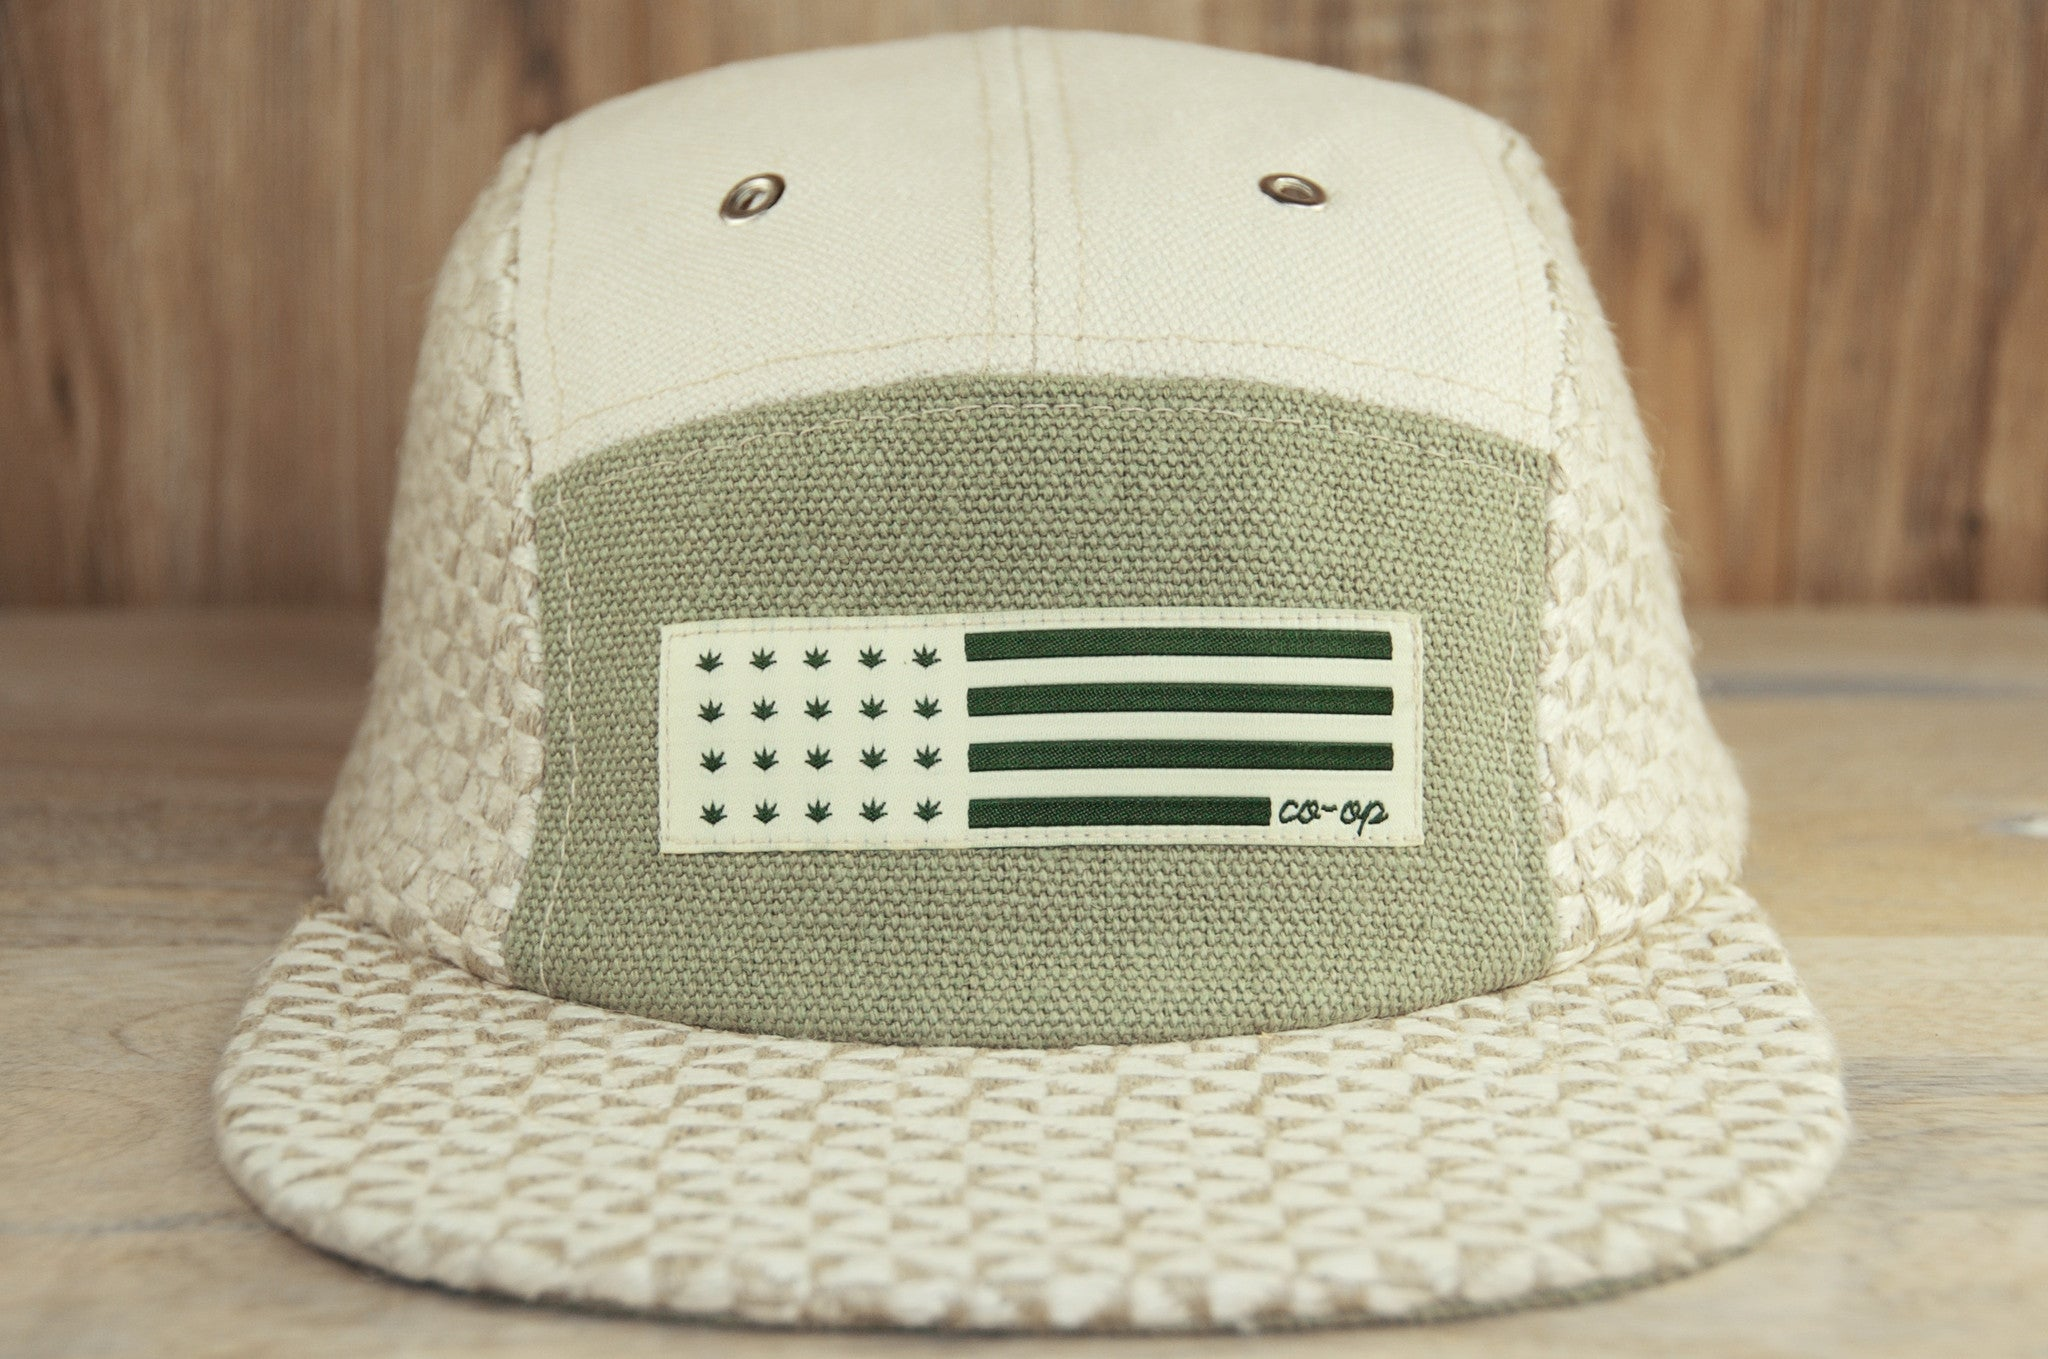 Velo City Hemp Pinwheel Cap (5-Panel) 1.0